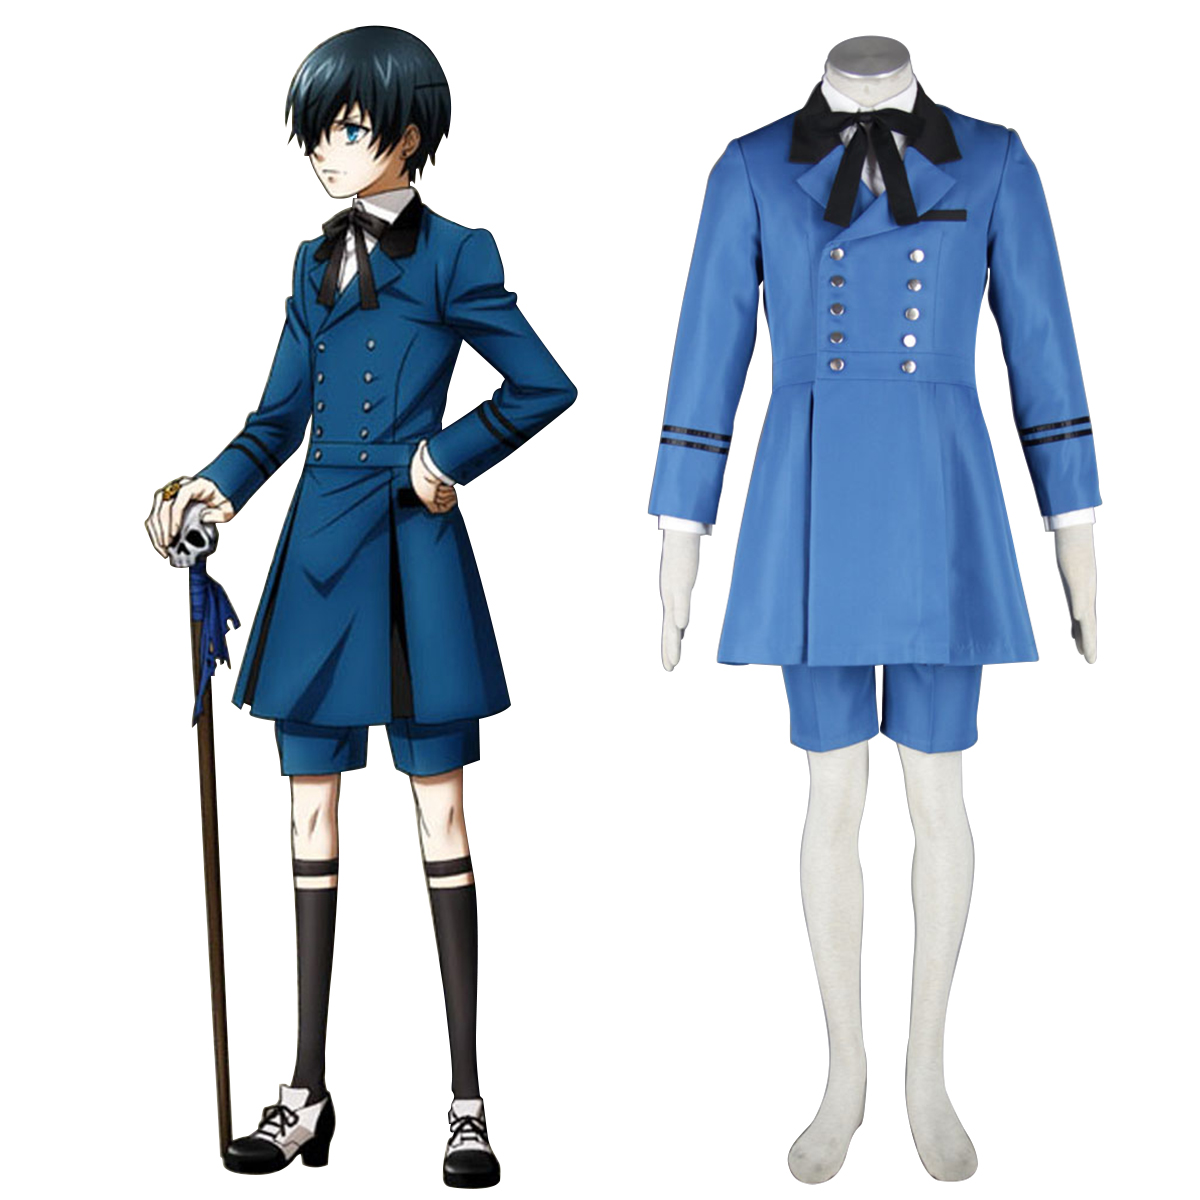 Black Butler Ciel Phantomhive 5 Anime Cosplay Costumes Outfit